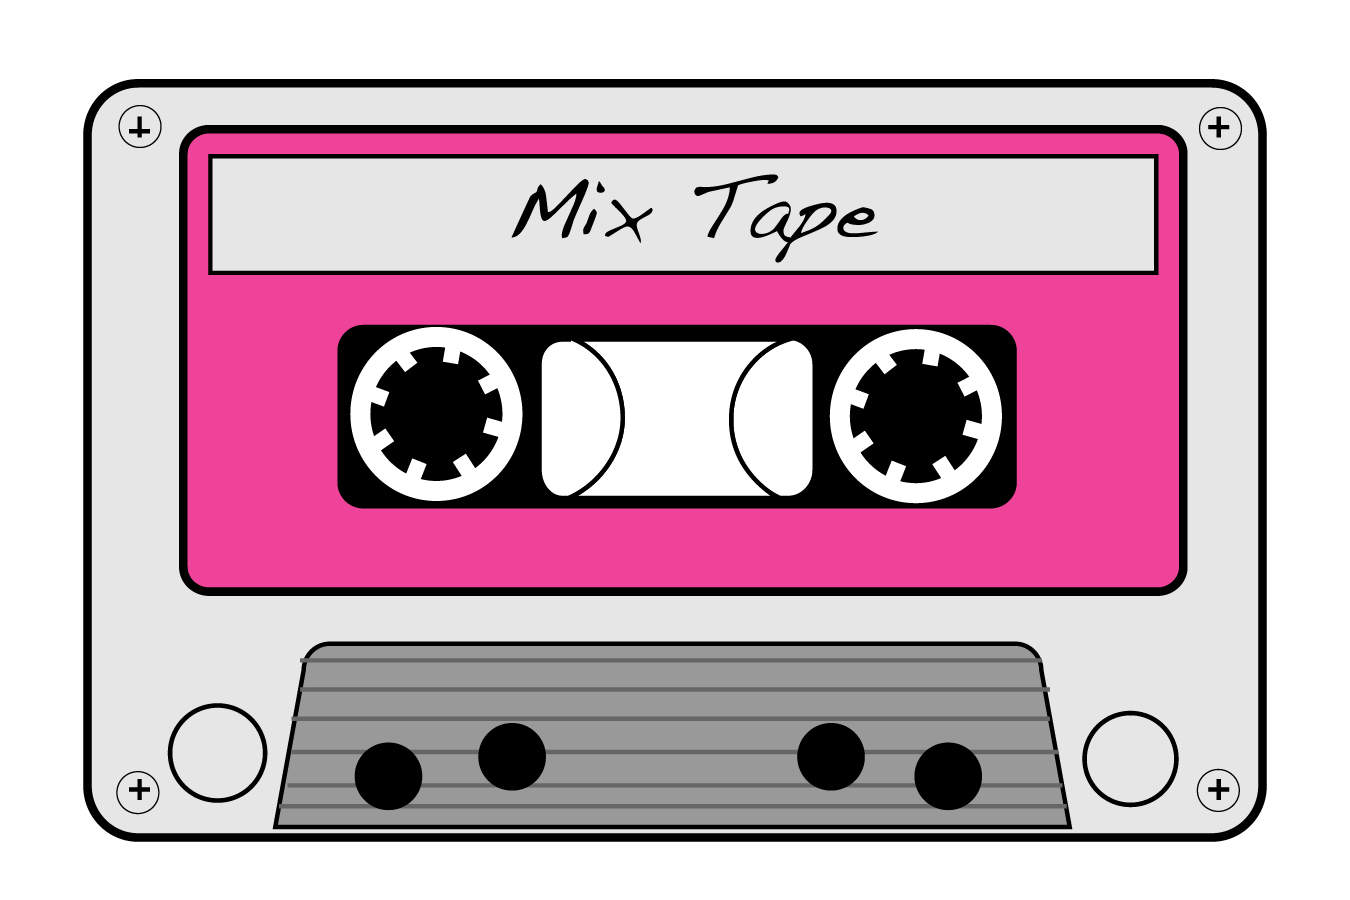 80\'s clipart mix tape, Picture #29750 80\'s clipart mix tape.